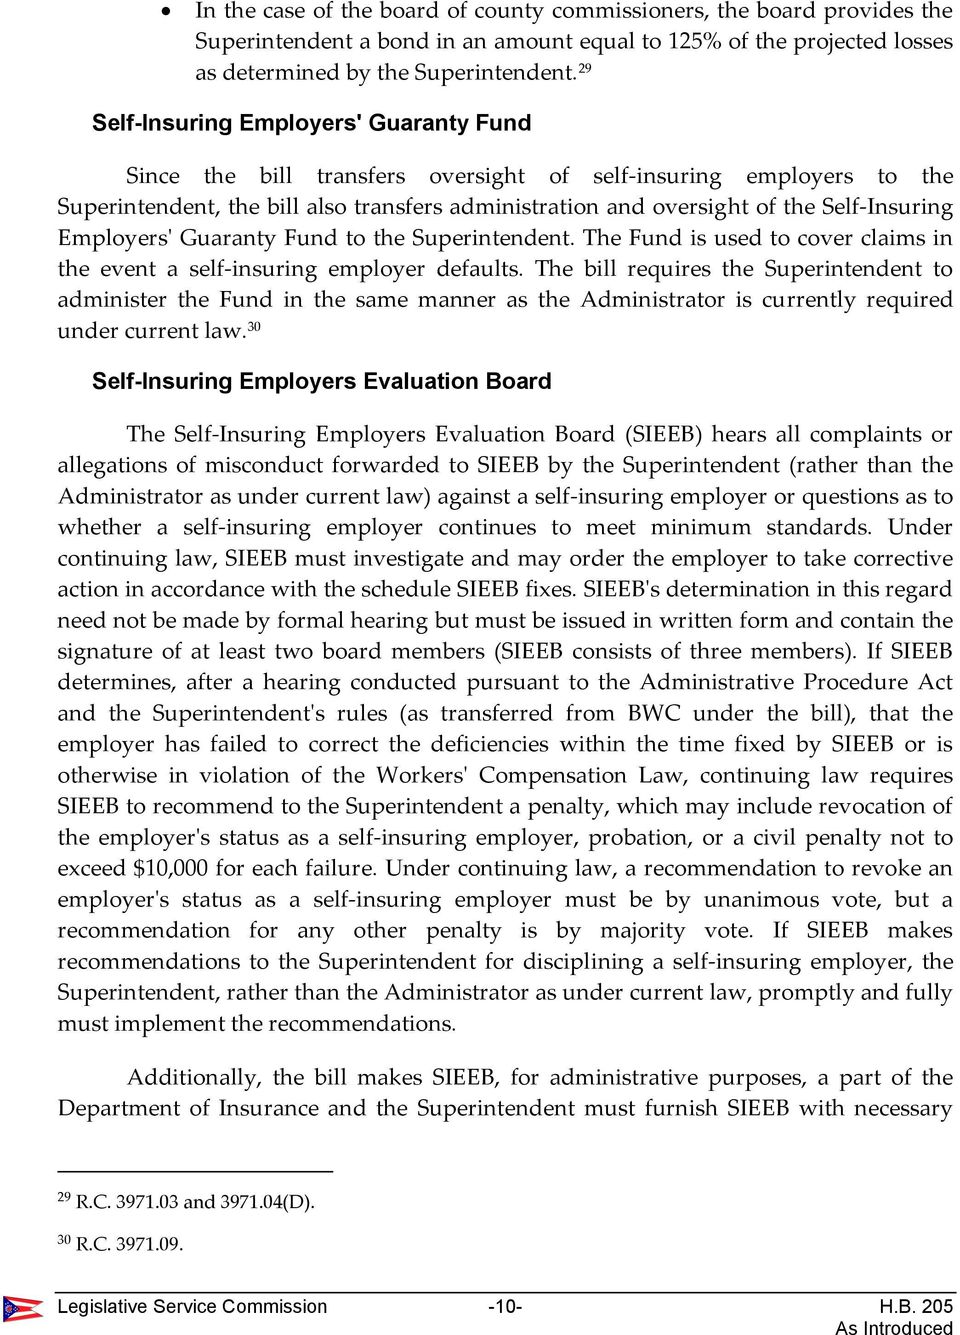 Self-Insuring Employers' Guaranty Fund to the Superintendent. The Fund is used to cover claims in the event a self-insuring employer defaults.